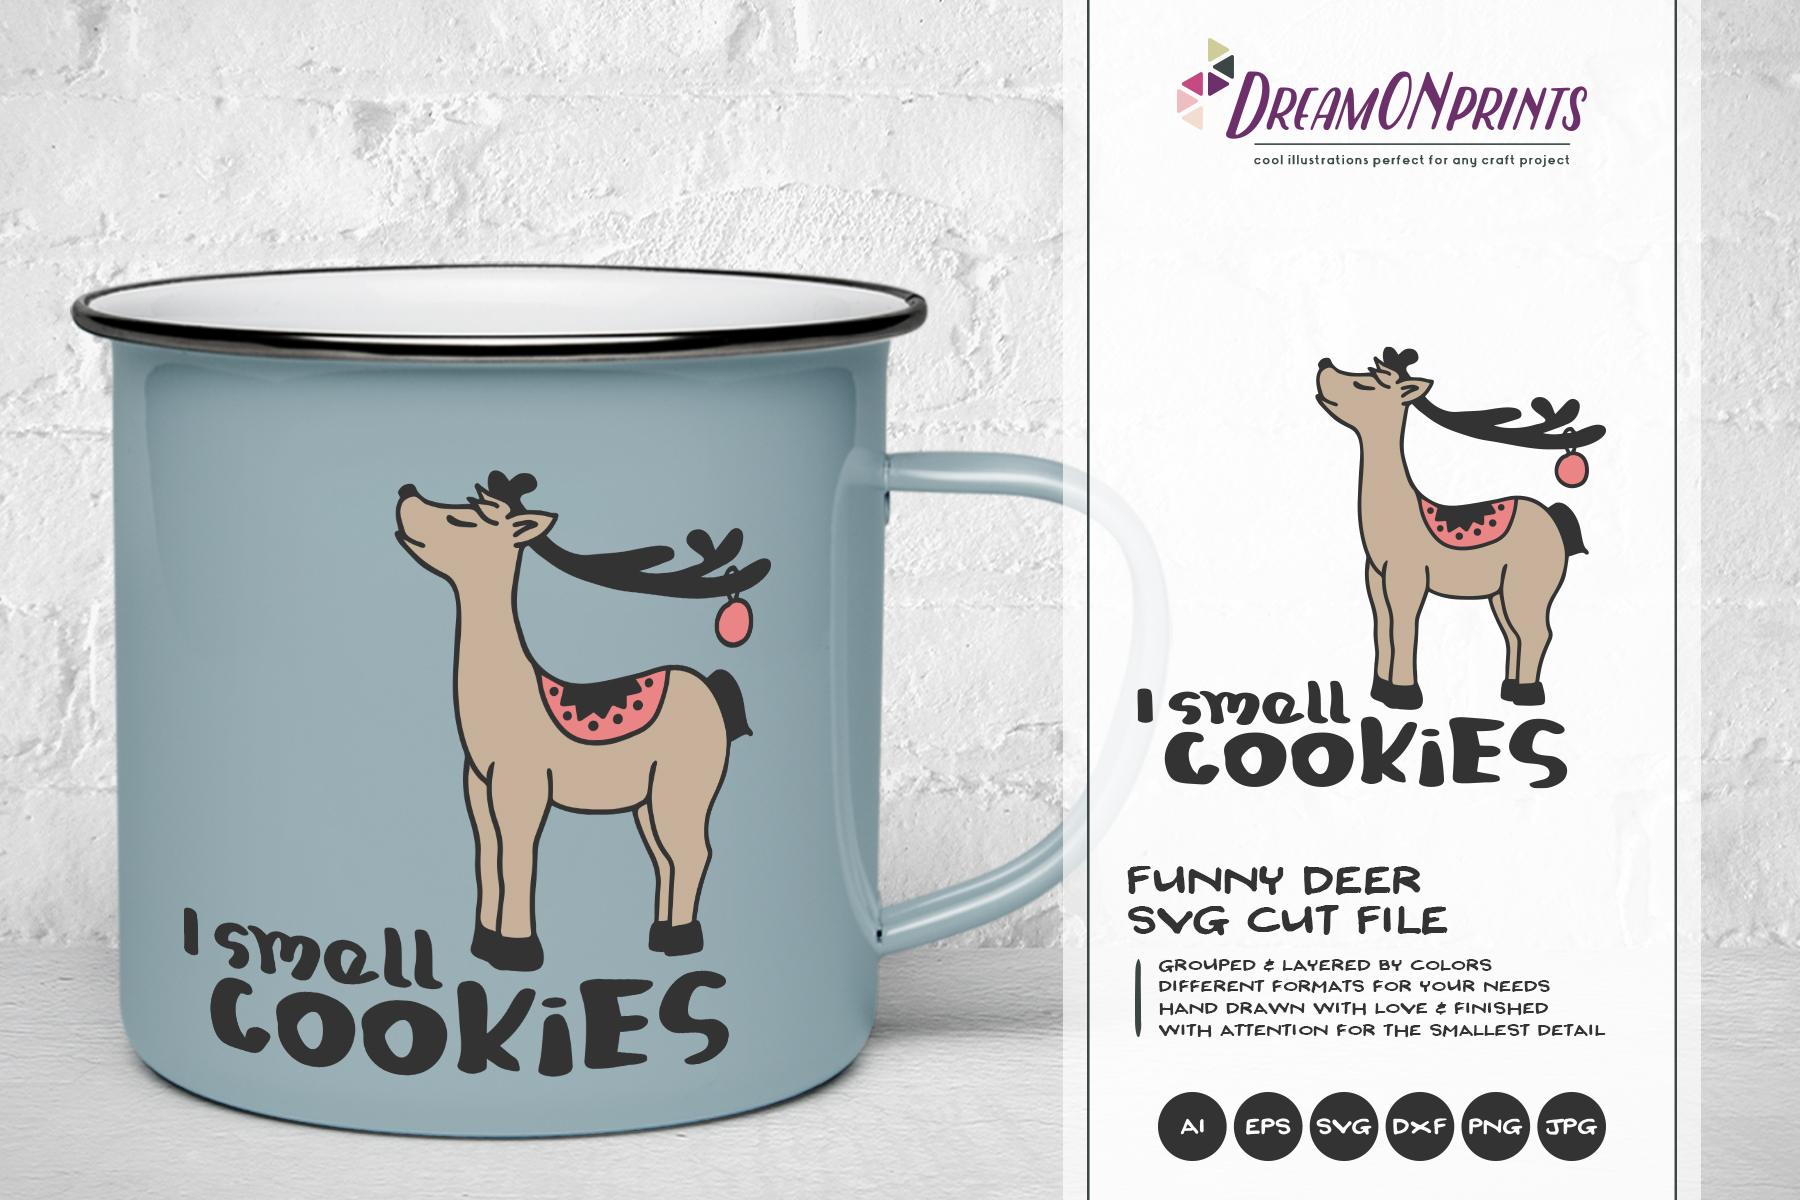 I Smell Cookies| Fun Deer SVG | Funny Christmas SVG example image 1